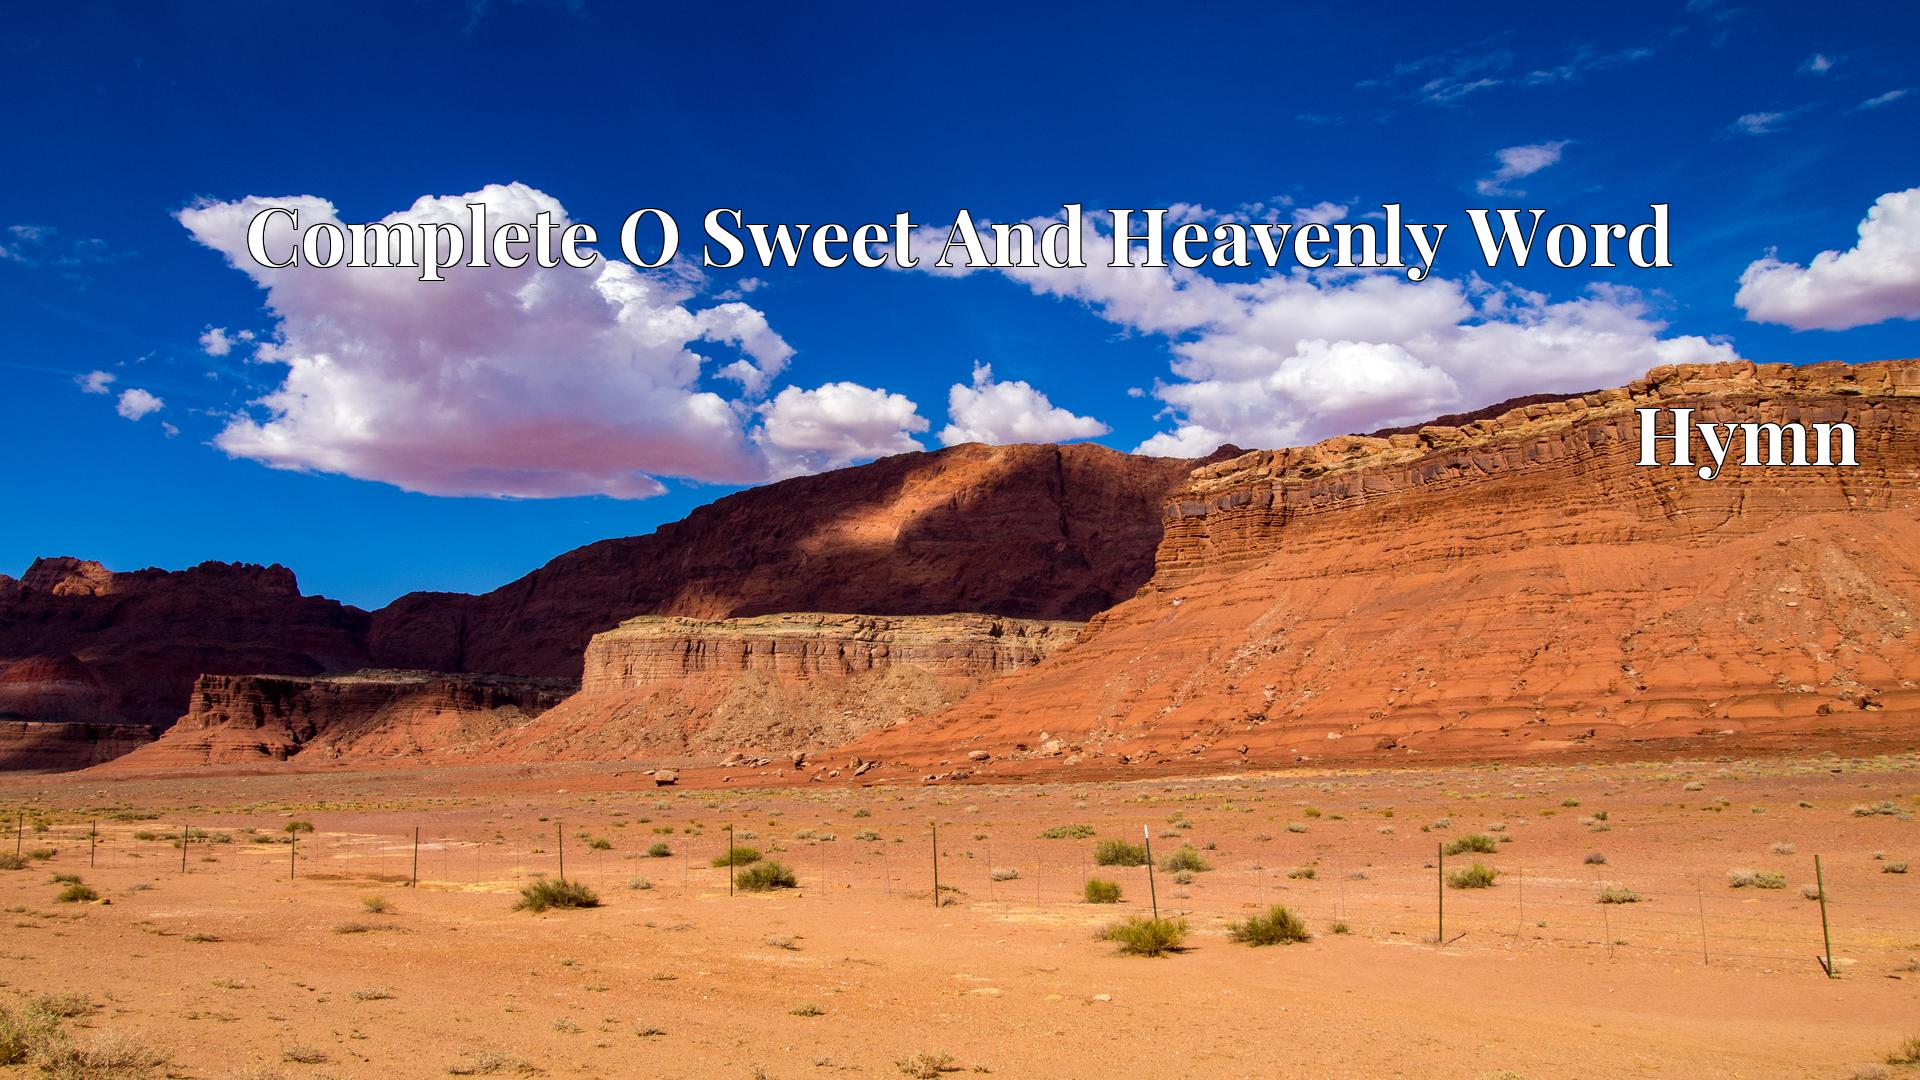 Complete O Sweet And Heavenly Word - Hymn